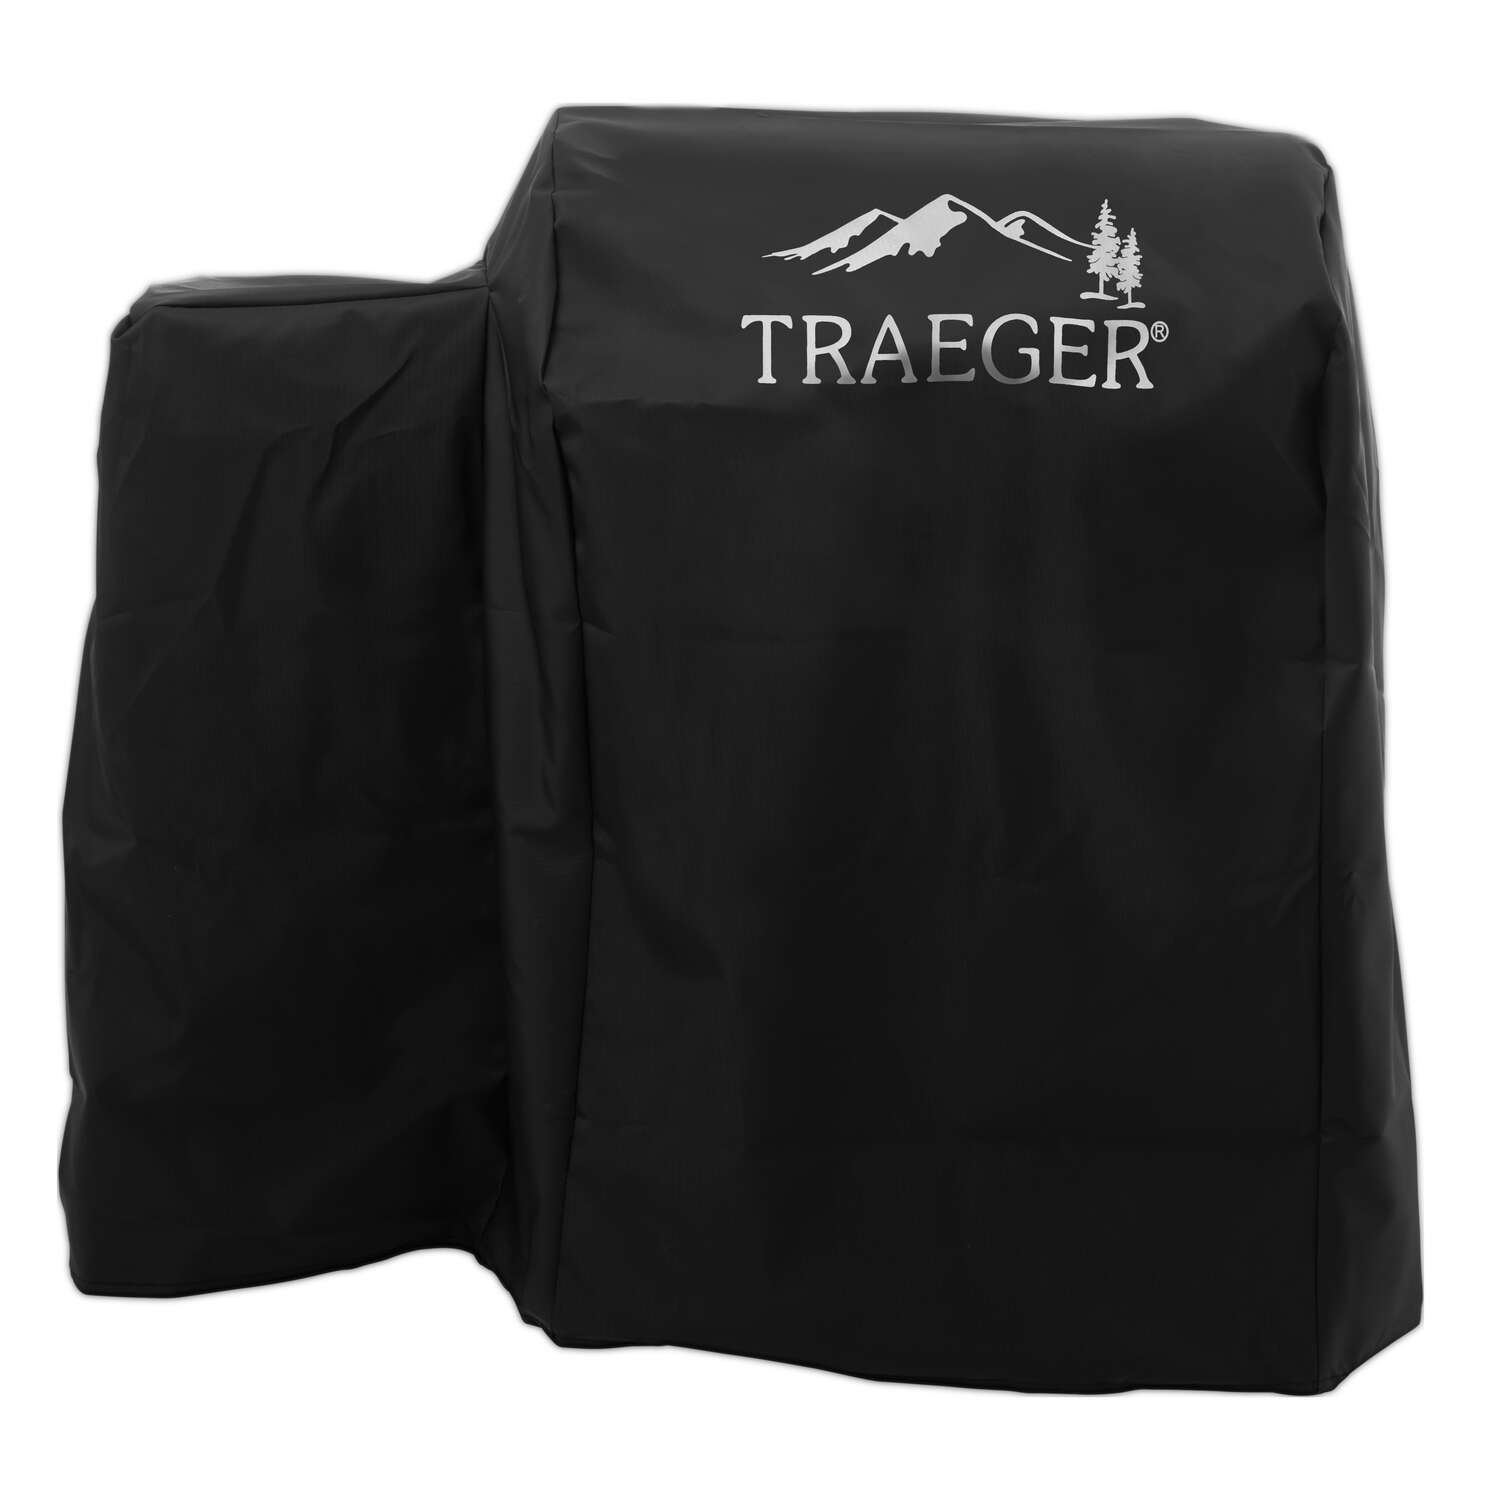 Traeger Black Grill Cover 21 in. W x 32 in. H